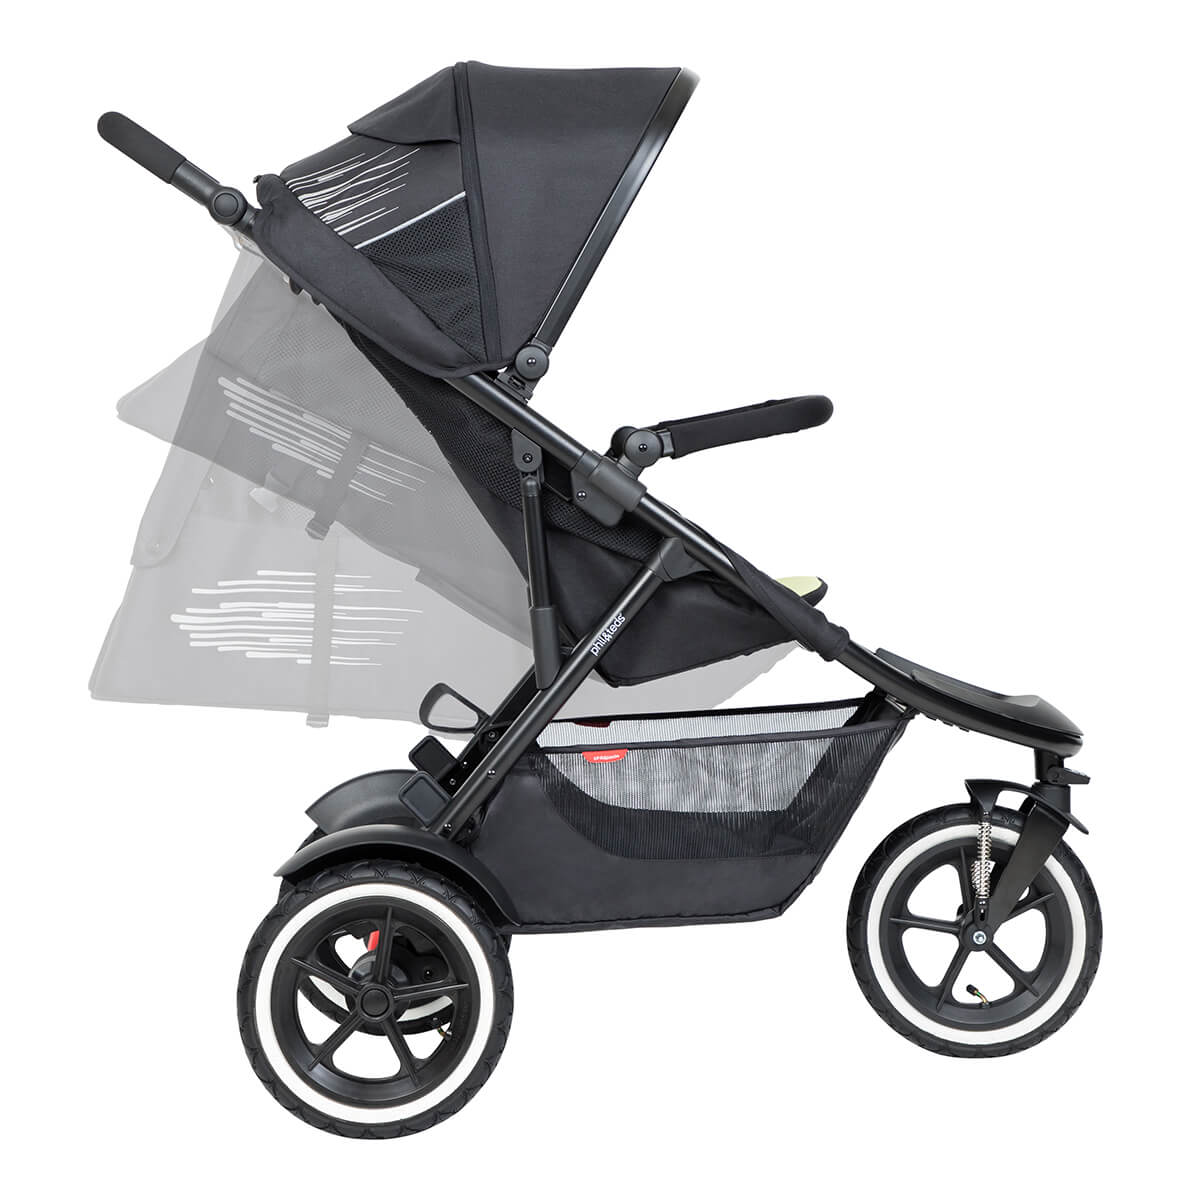 https://cdn.accentuate.io/4509526851672/19272668184664/philteds-sport-buggy-can-recline-in-multiple-angles-including-full-recline-for-newborn-baby-v1626484309021.jpg?1200x1200